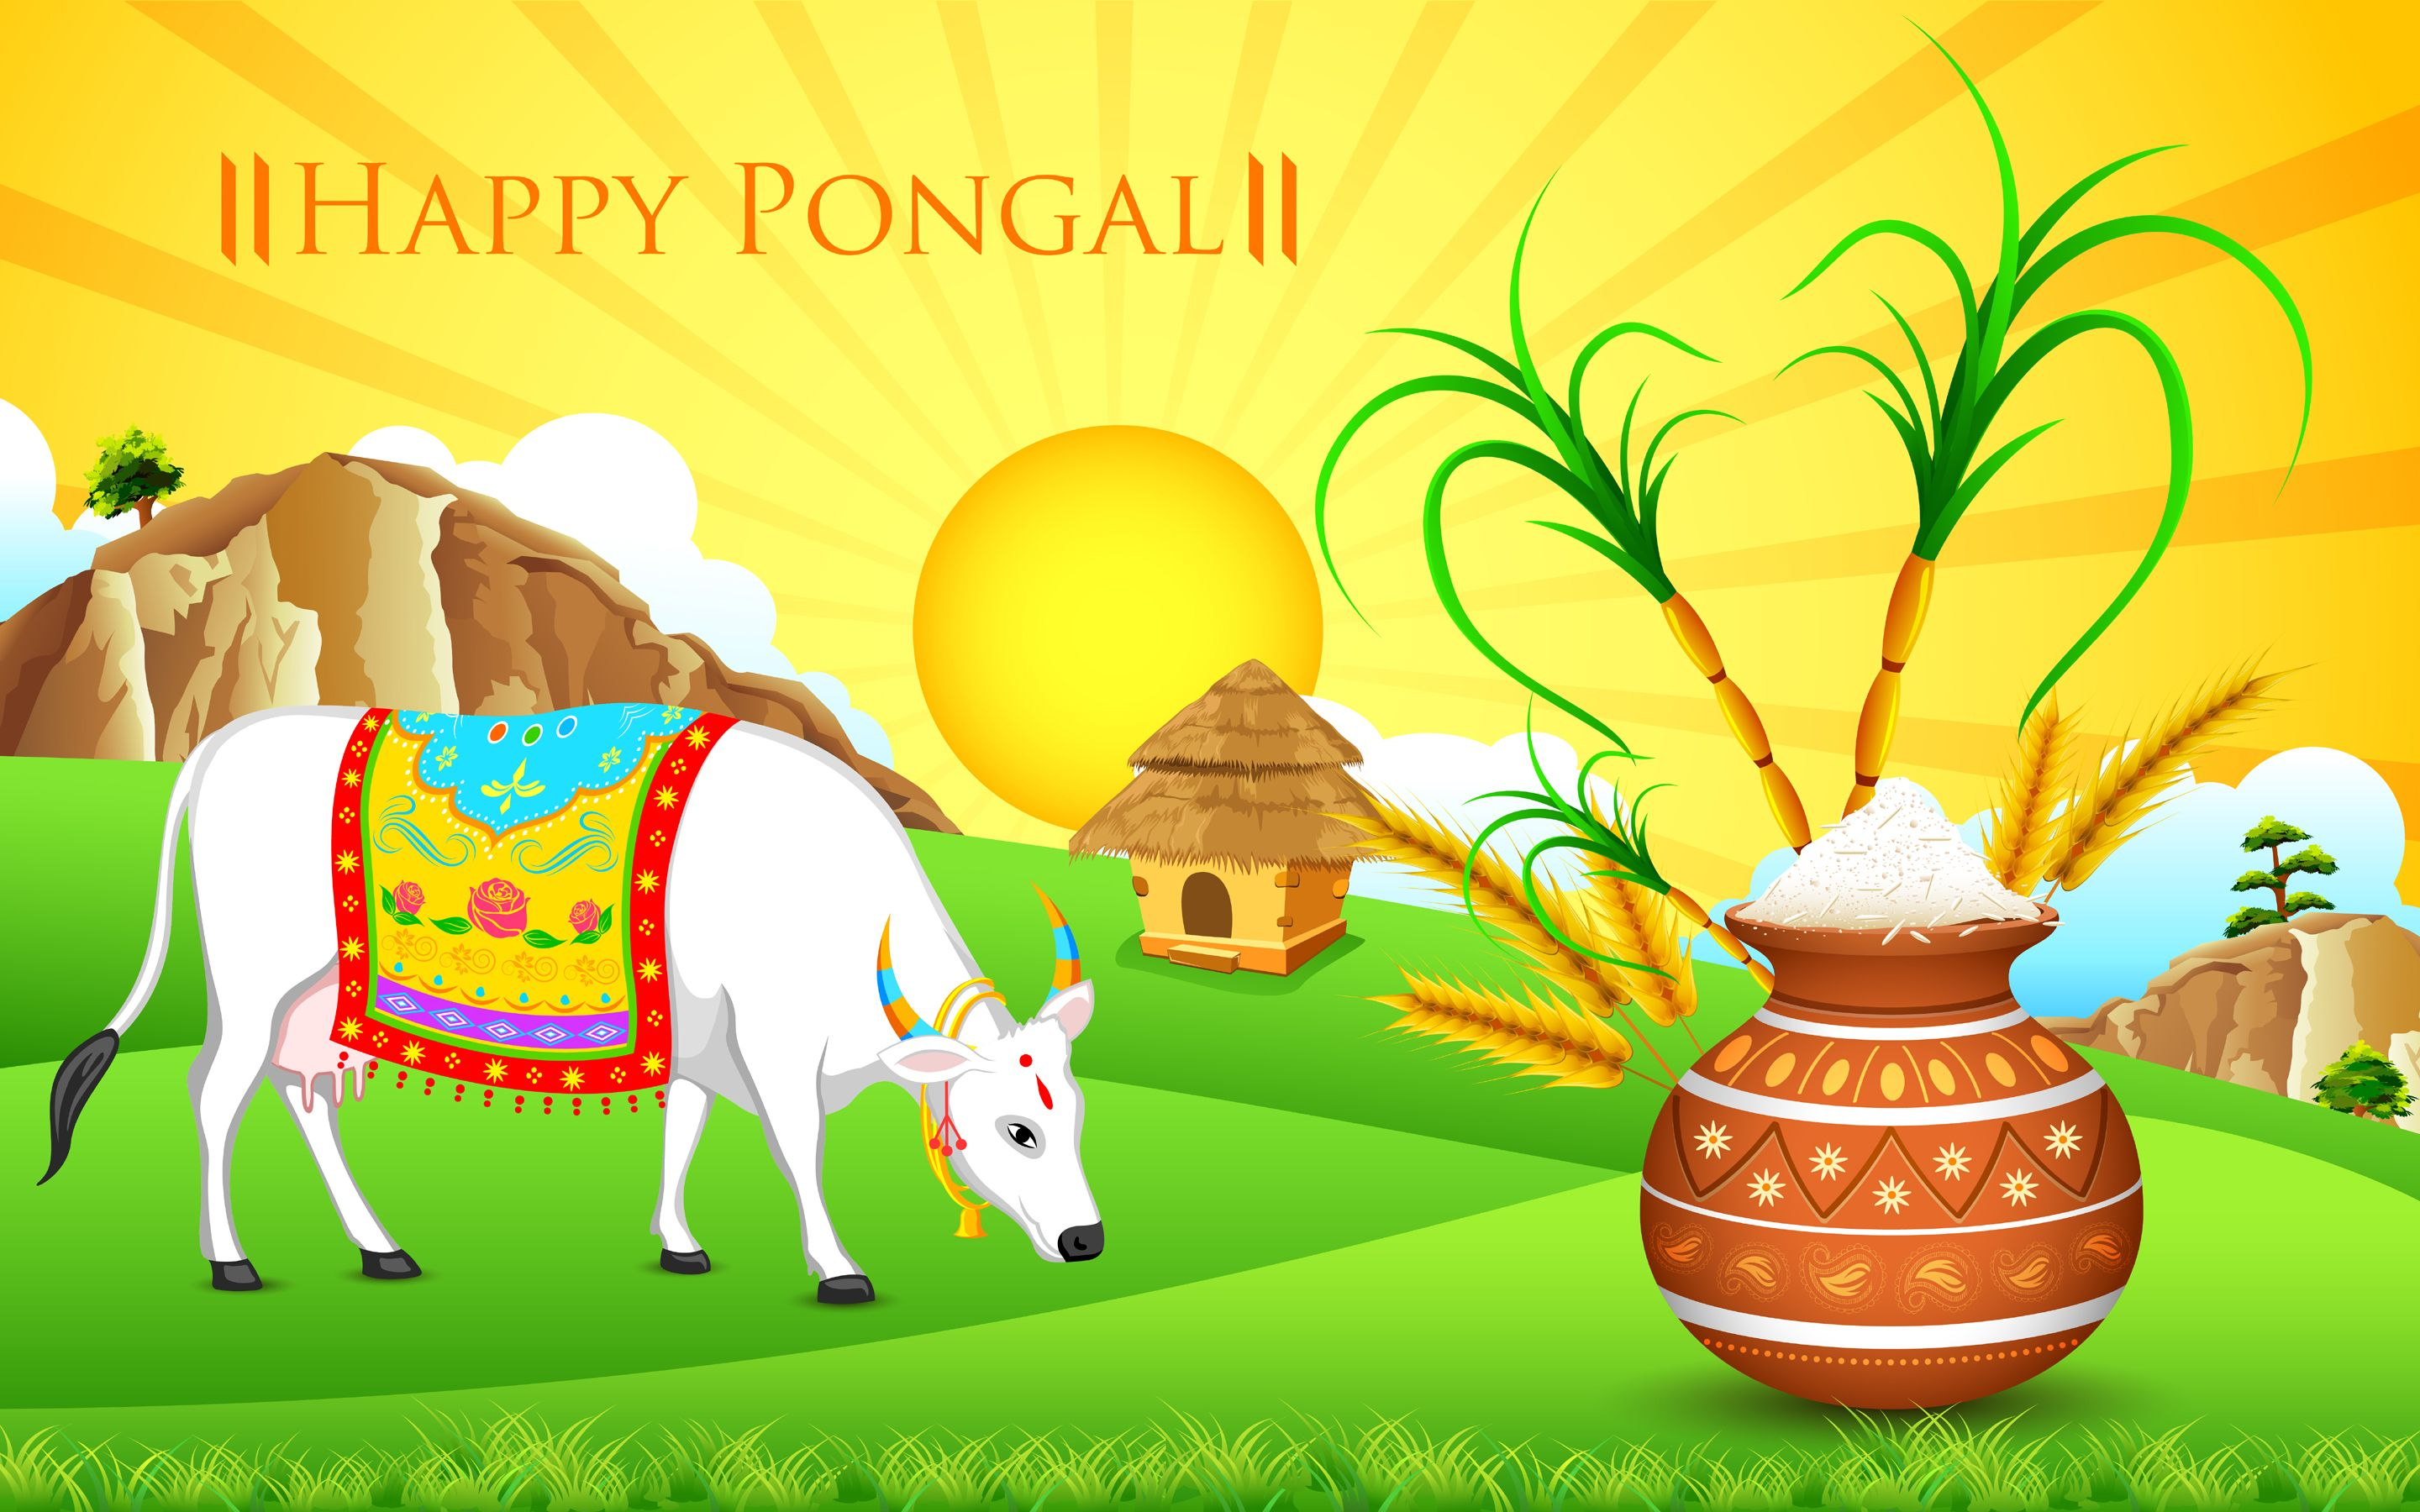 Happy pongal festival wishes lovely desktop wallpaper happy pongal happy pongal festival wishes lovely desktop wallpaper happy pongalwishesnewhd wallpapers kristyandbryce Images